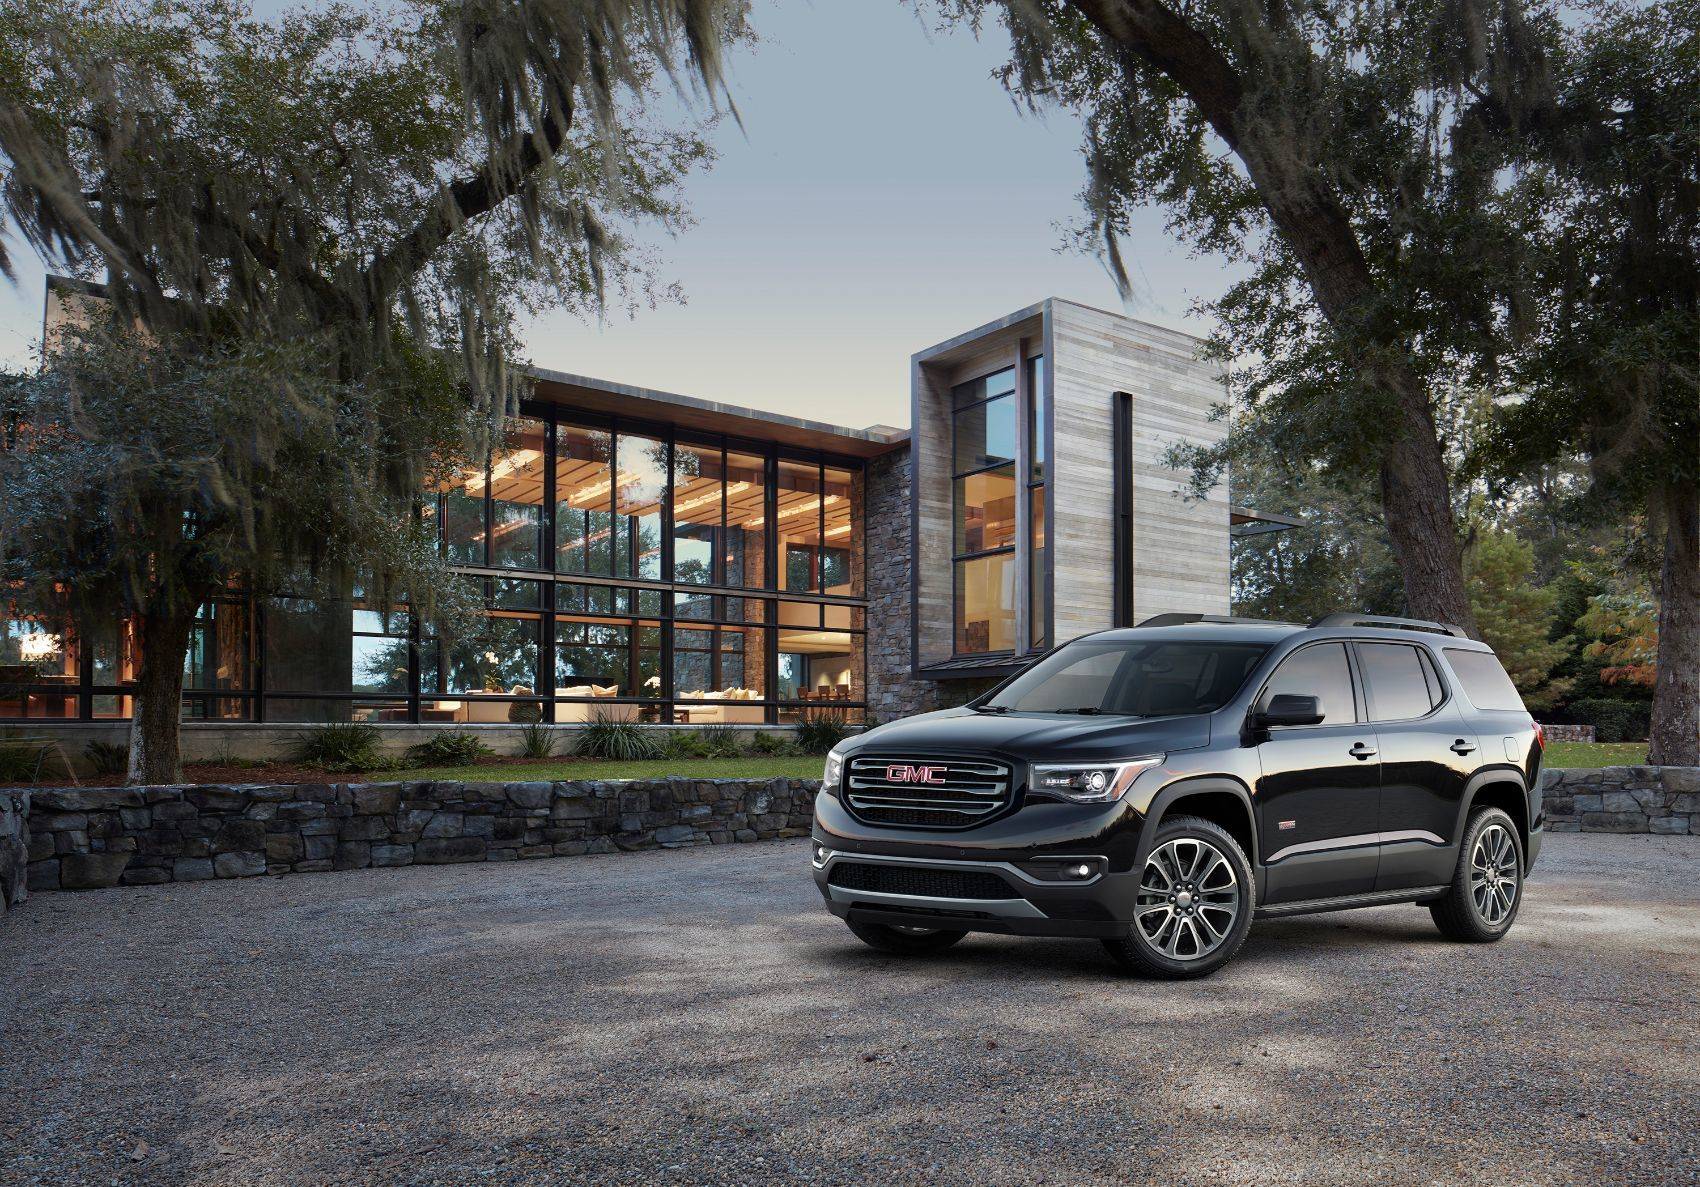 2019 Gmc Acadia Review A Nice Middle Ground For Families With